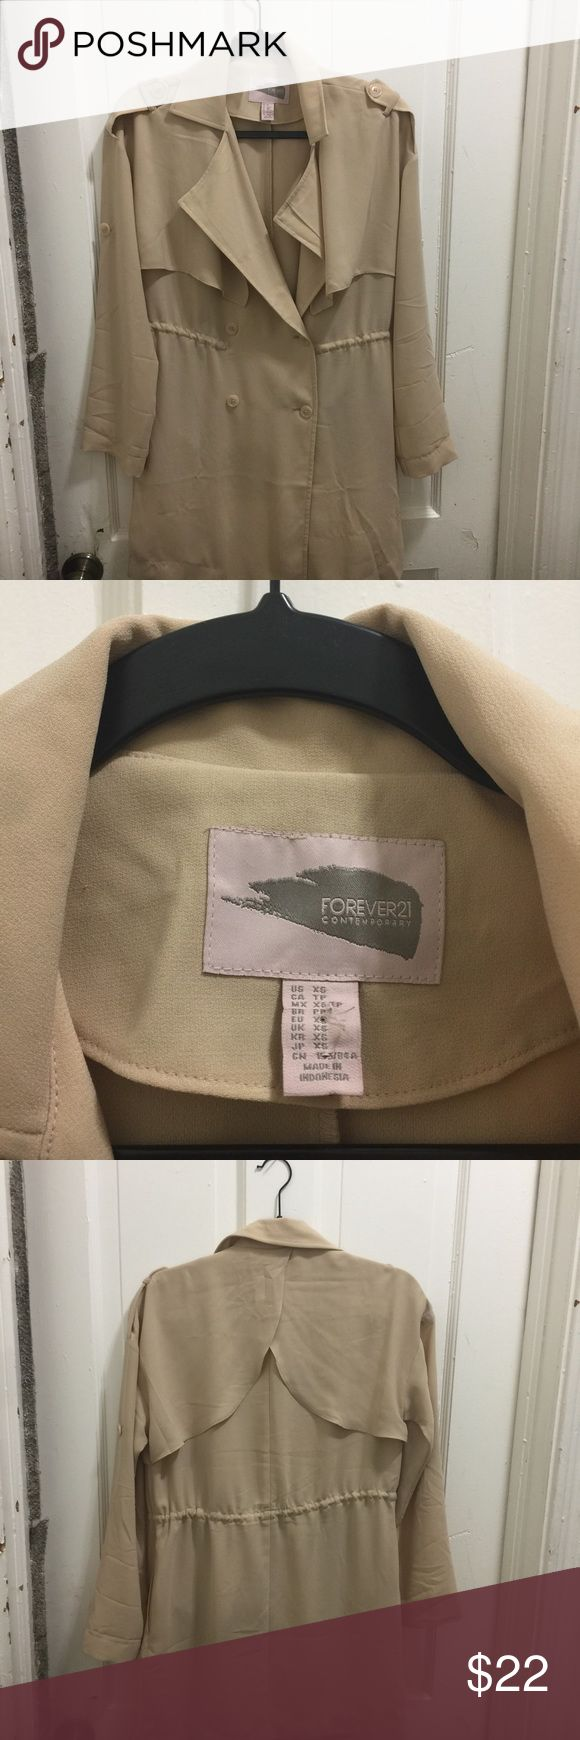 Forever 21 Lightweight trench jacket Cute trench jacket by Forever 21 size is XS but can fit Medium to Large Forever 21 Jackets & Coats Trench Coats